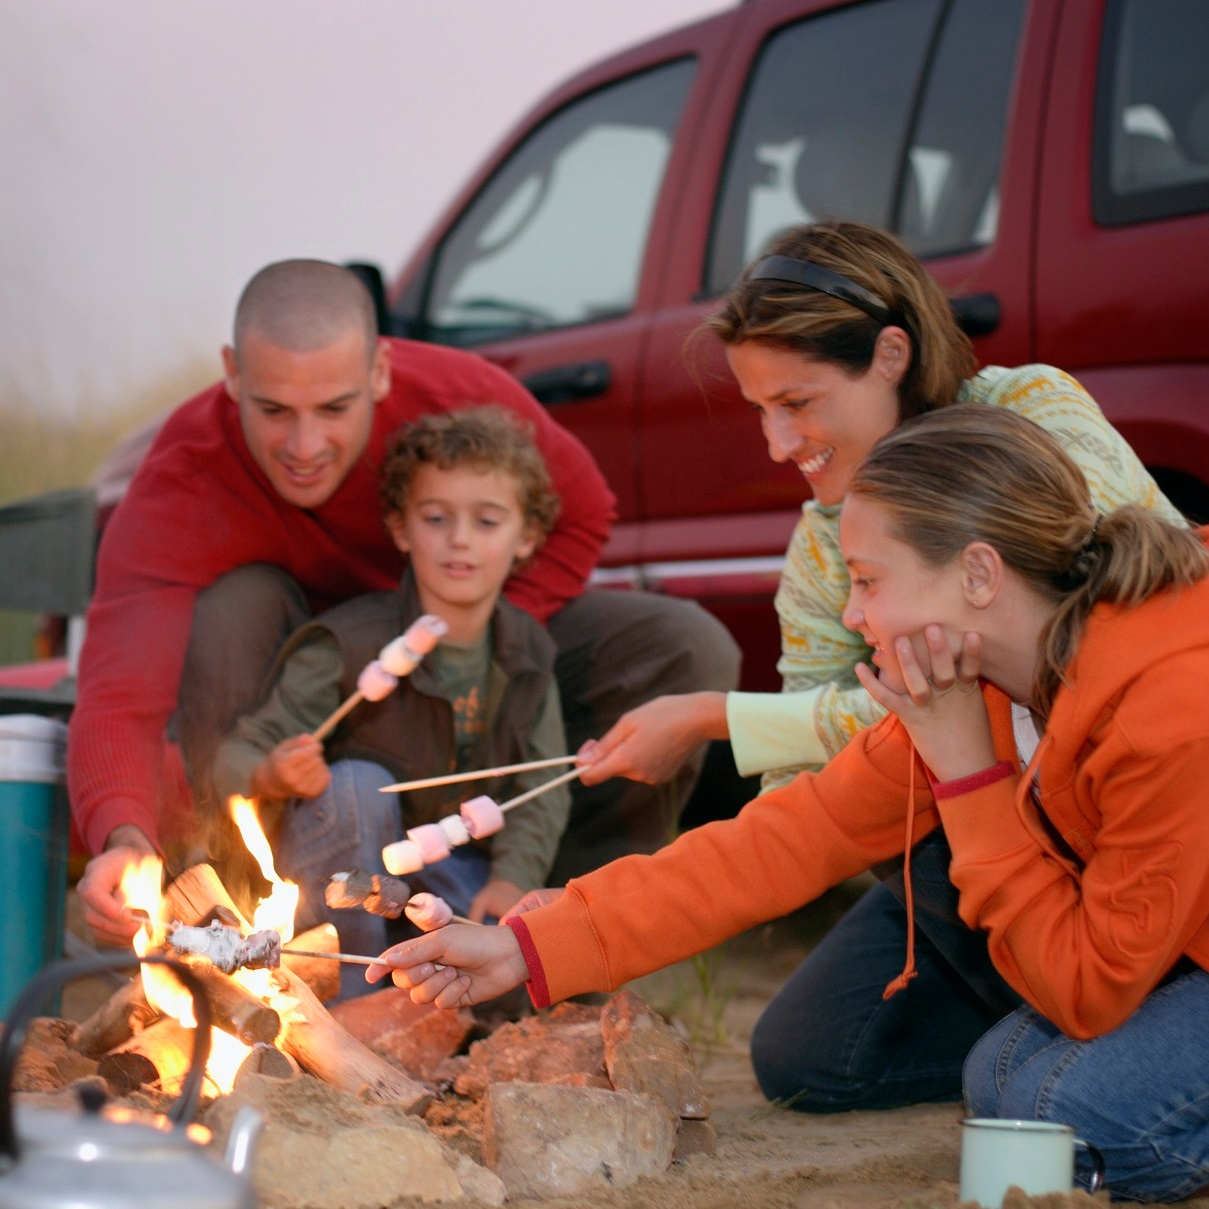 family roasting marshmallows while car camping